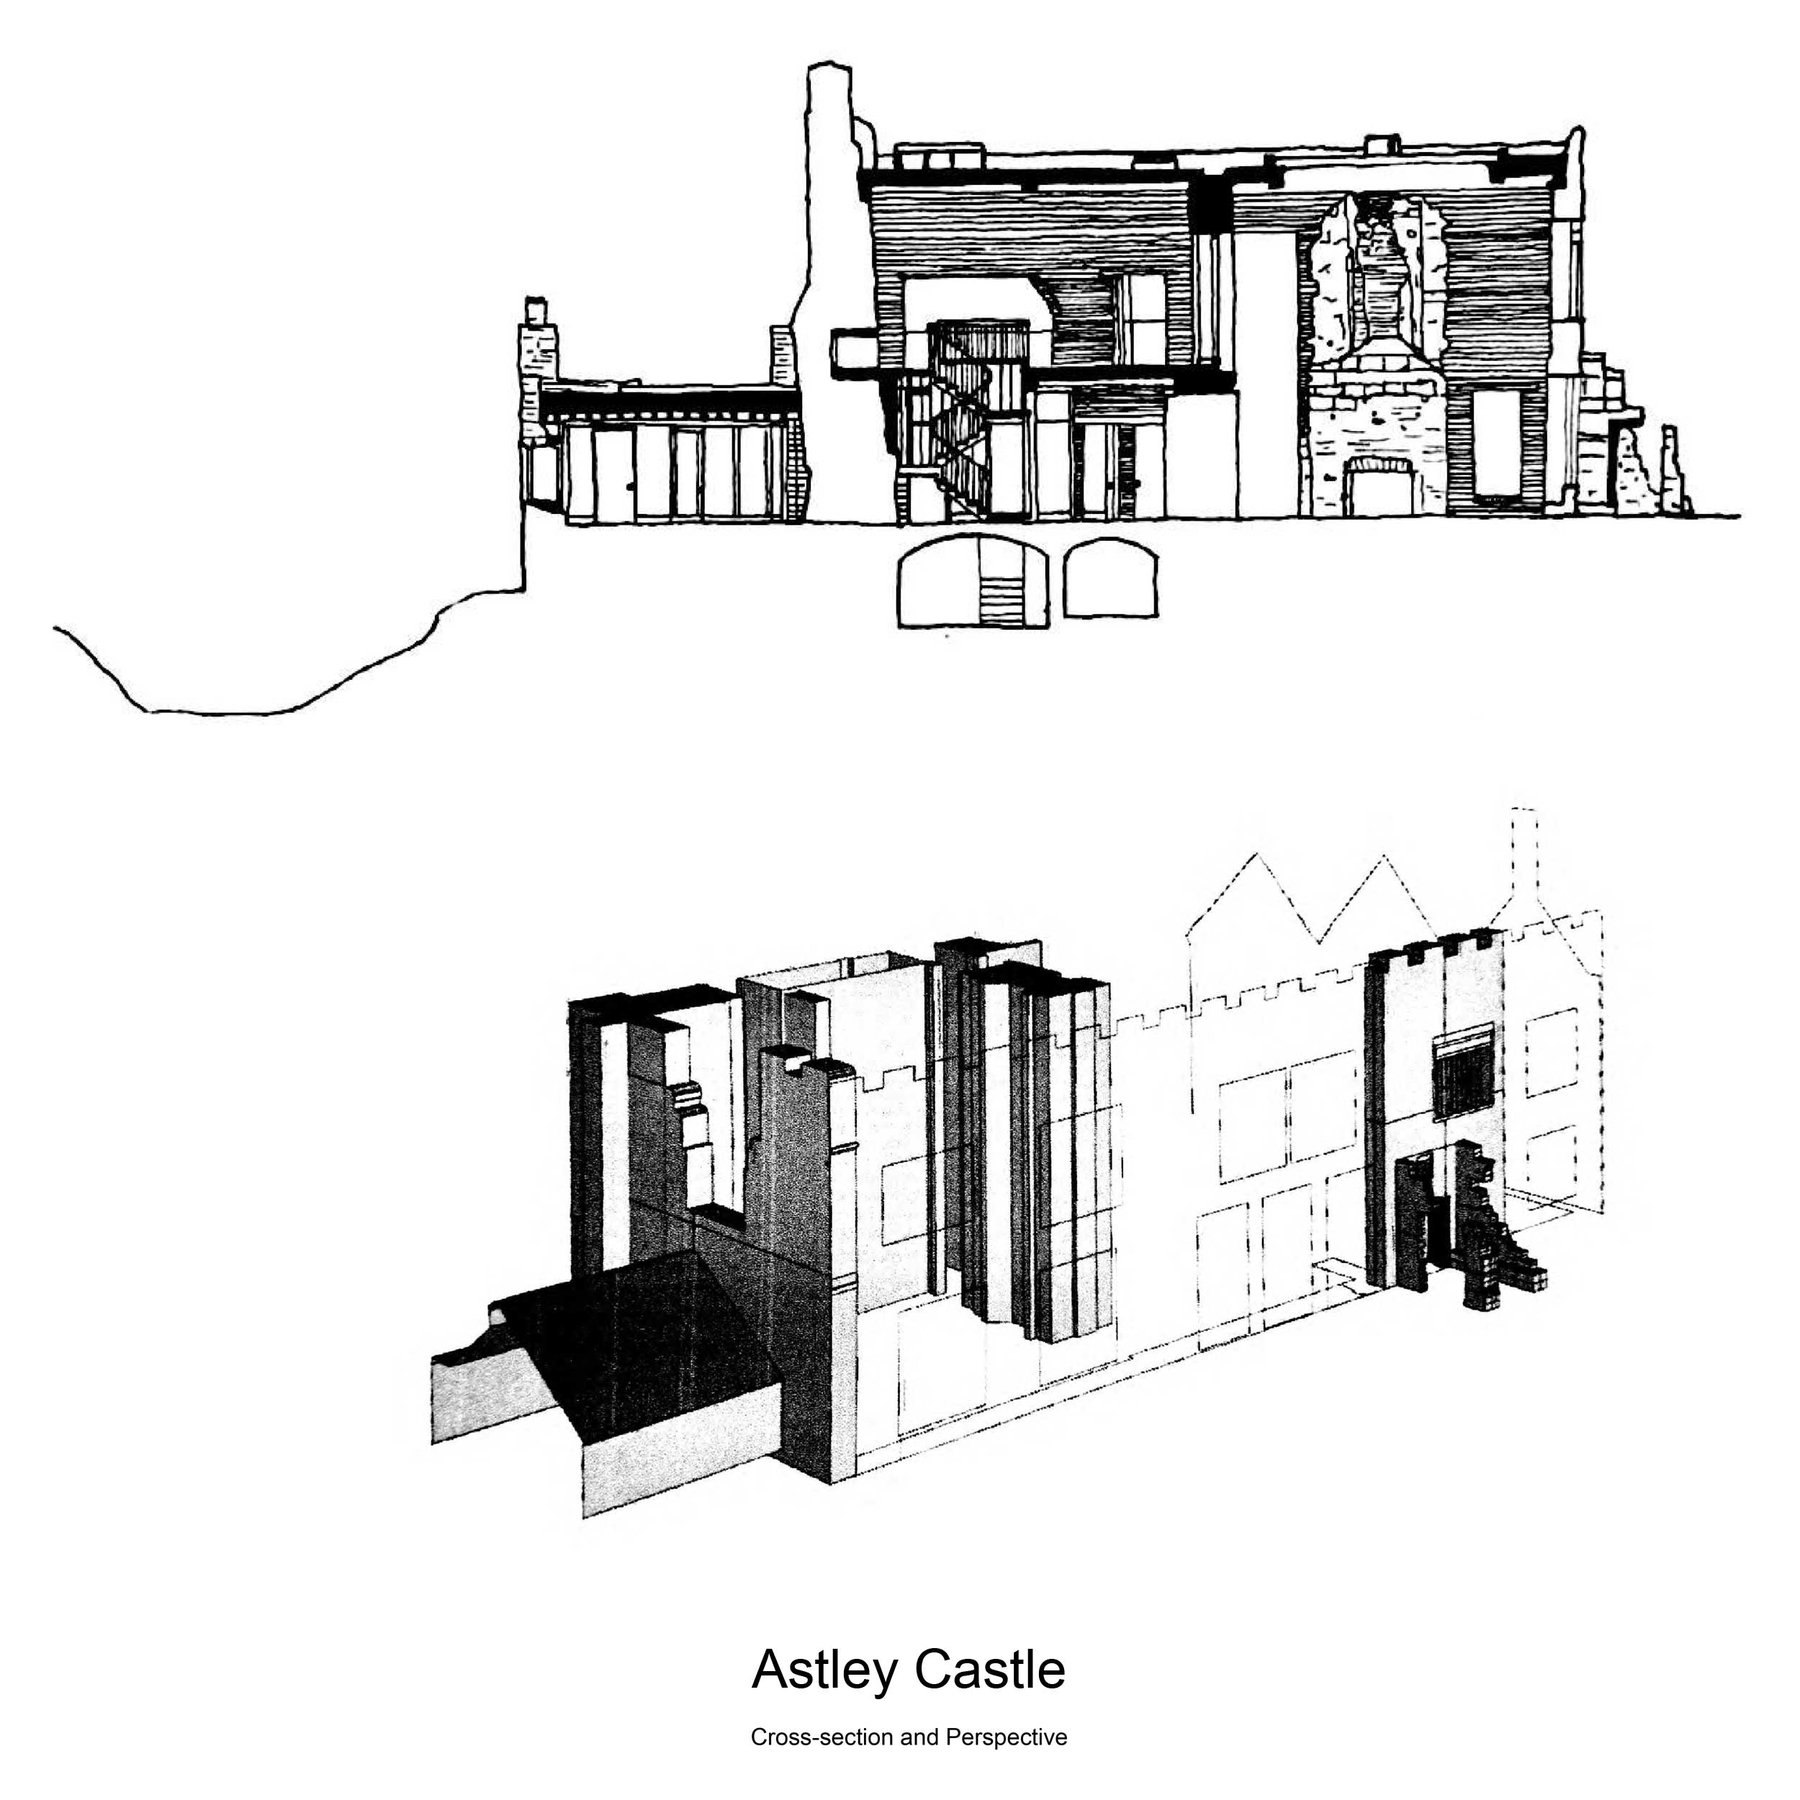 24-Rory-Farragher_Case-Study_Astley-Castle-Section-_-Perspective.jpg